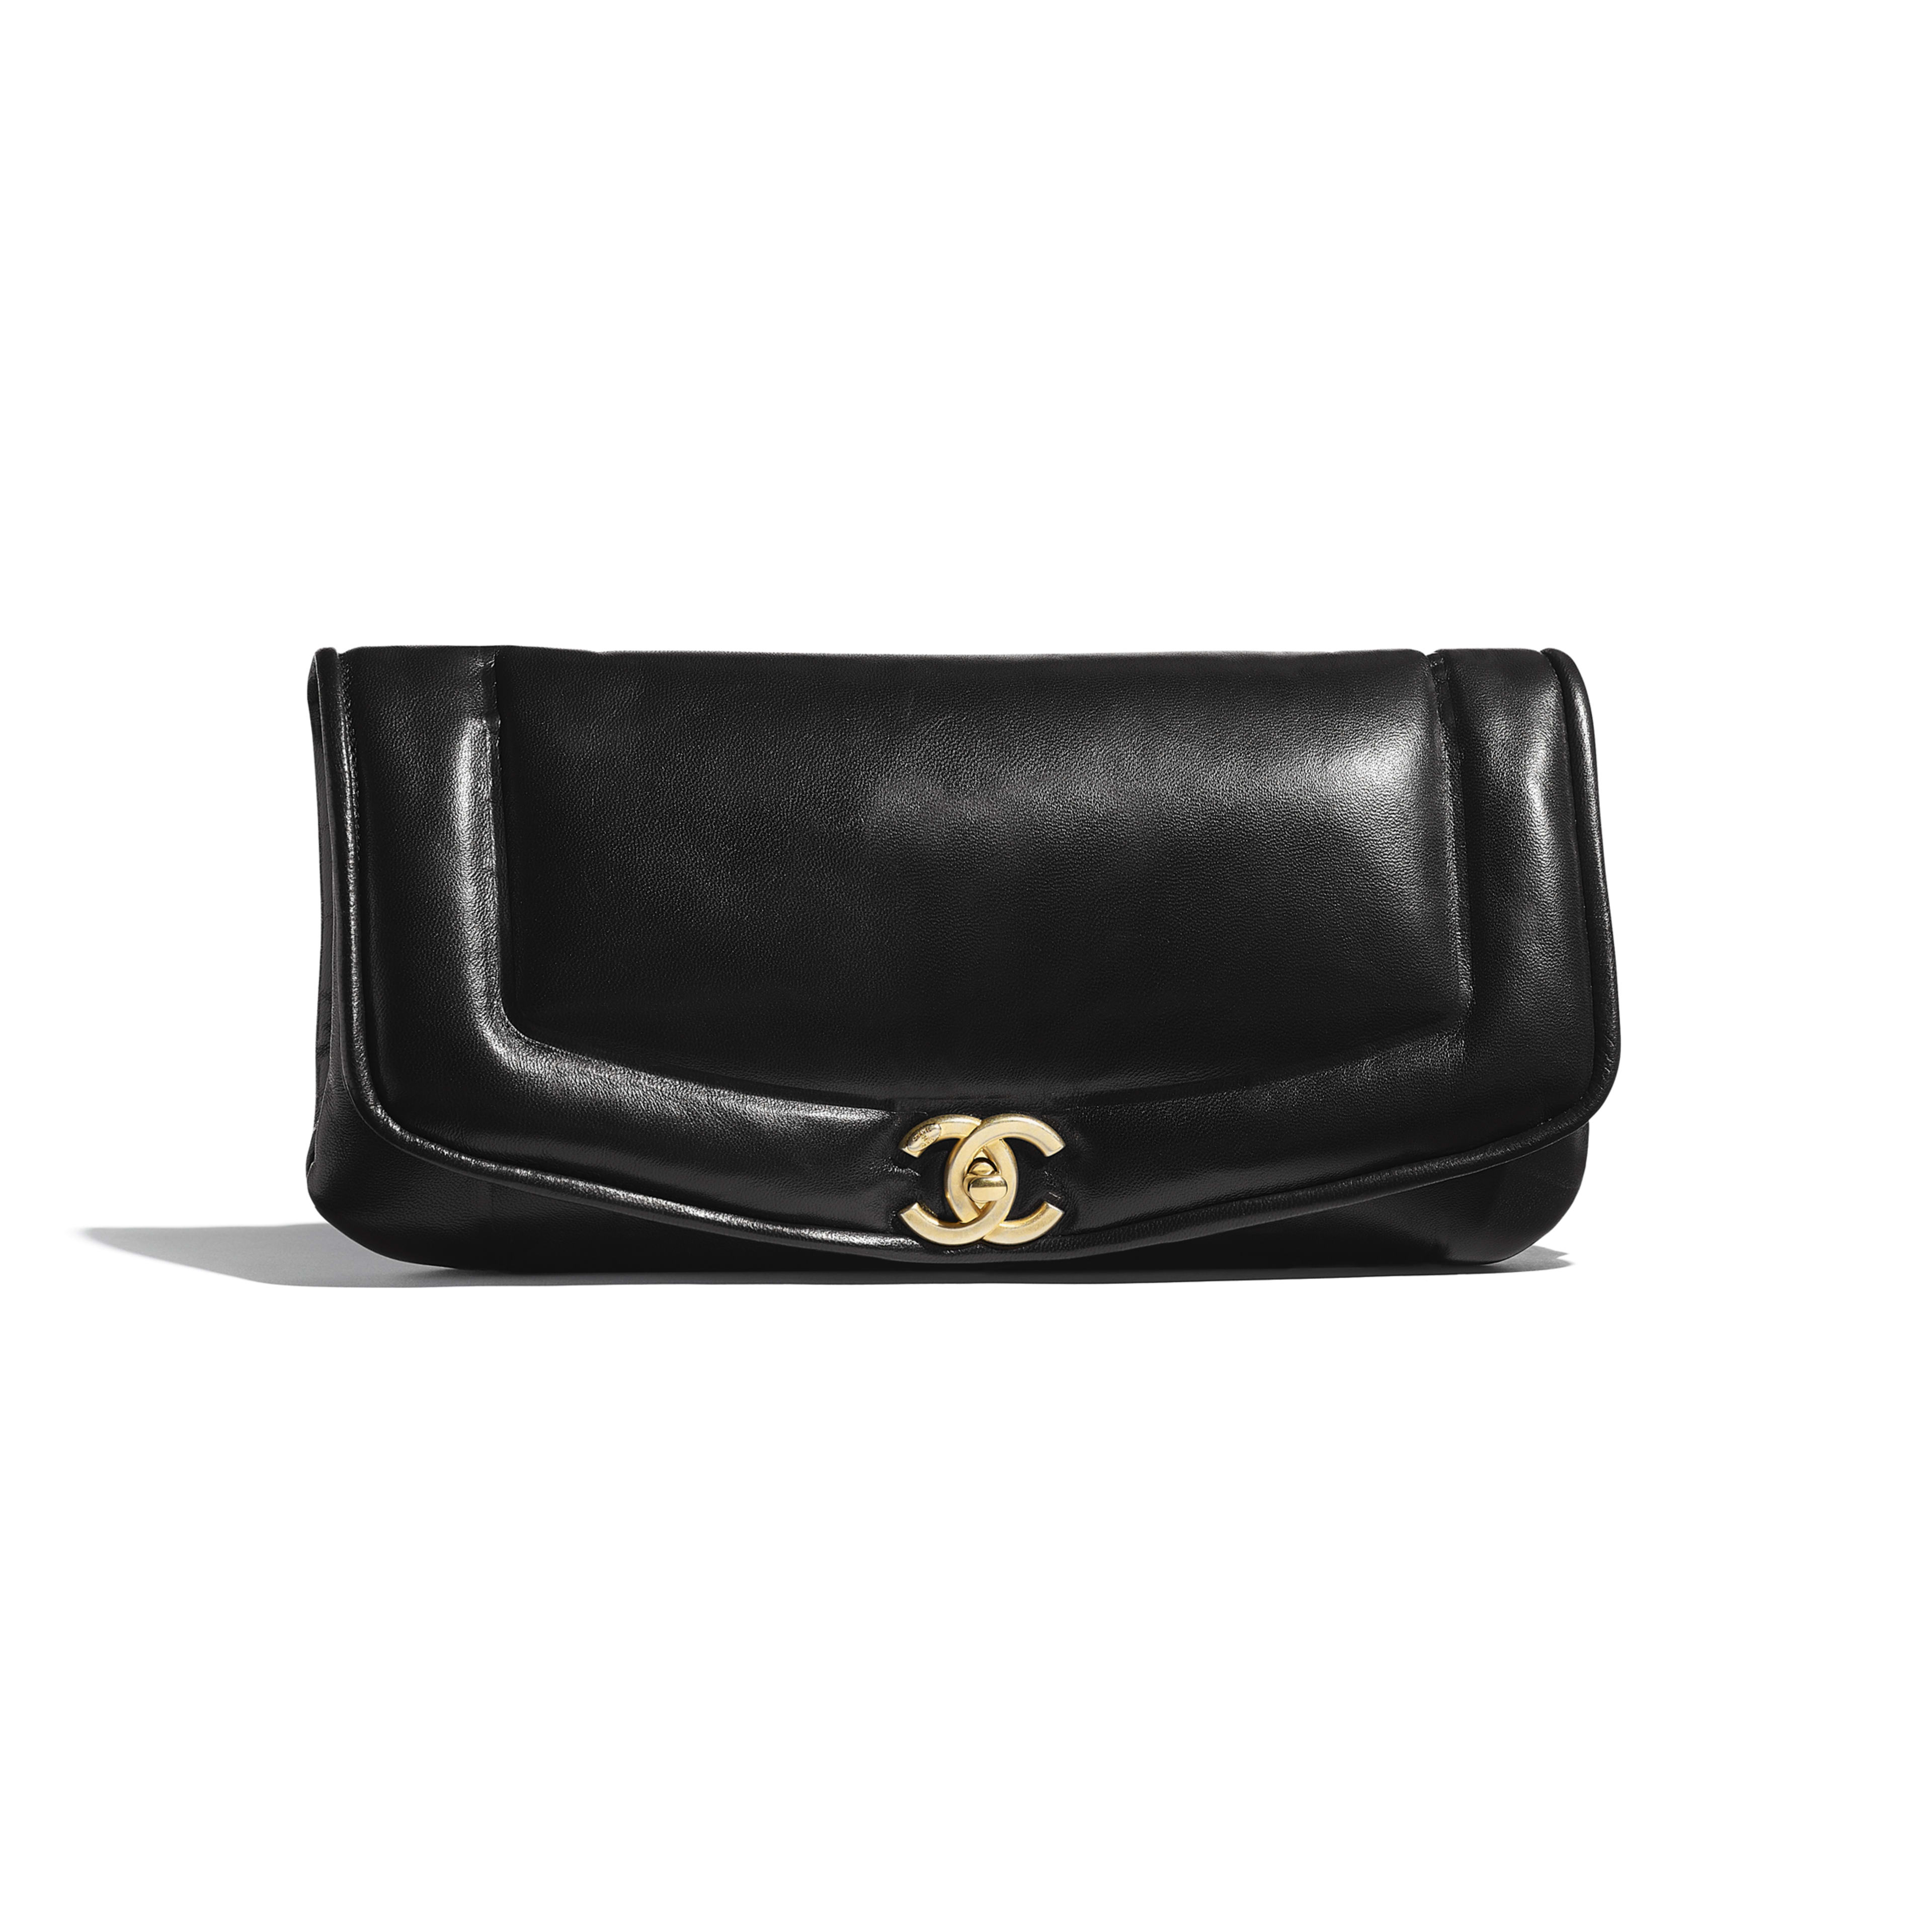 Clutch - Black - Lambskin & Gold-Tone Metal - Default view - see full sized version